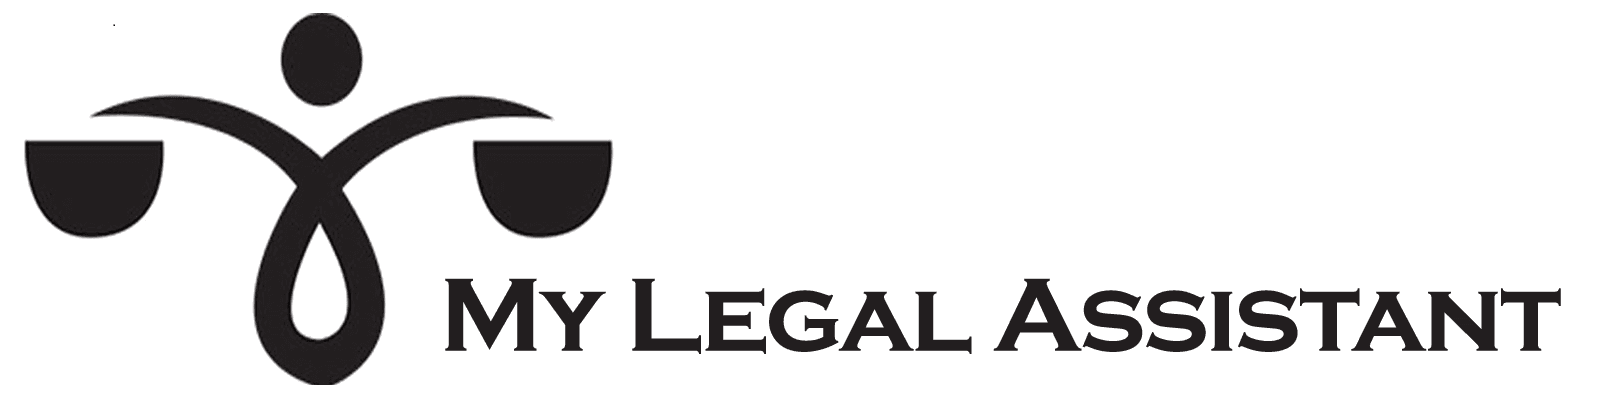 my legal assistant logo